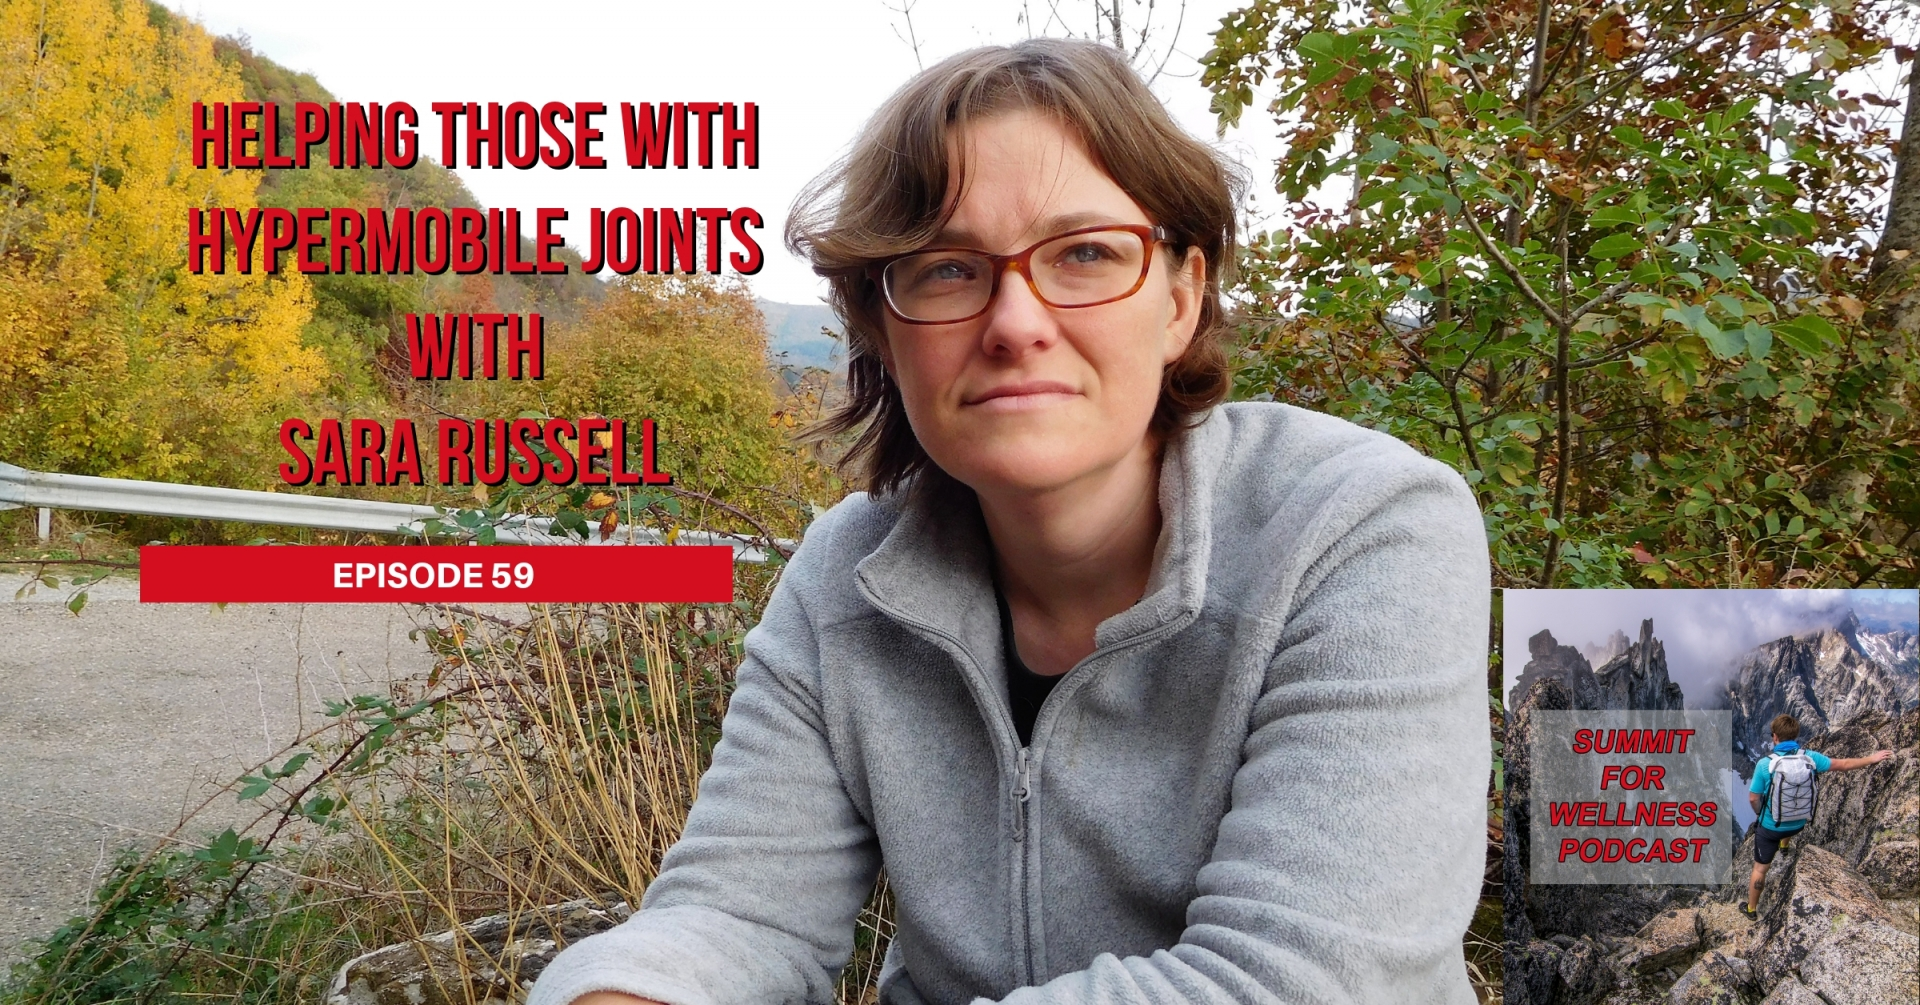 Sara Russell helps those with hypermobile joints to improve their health